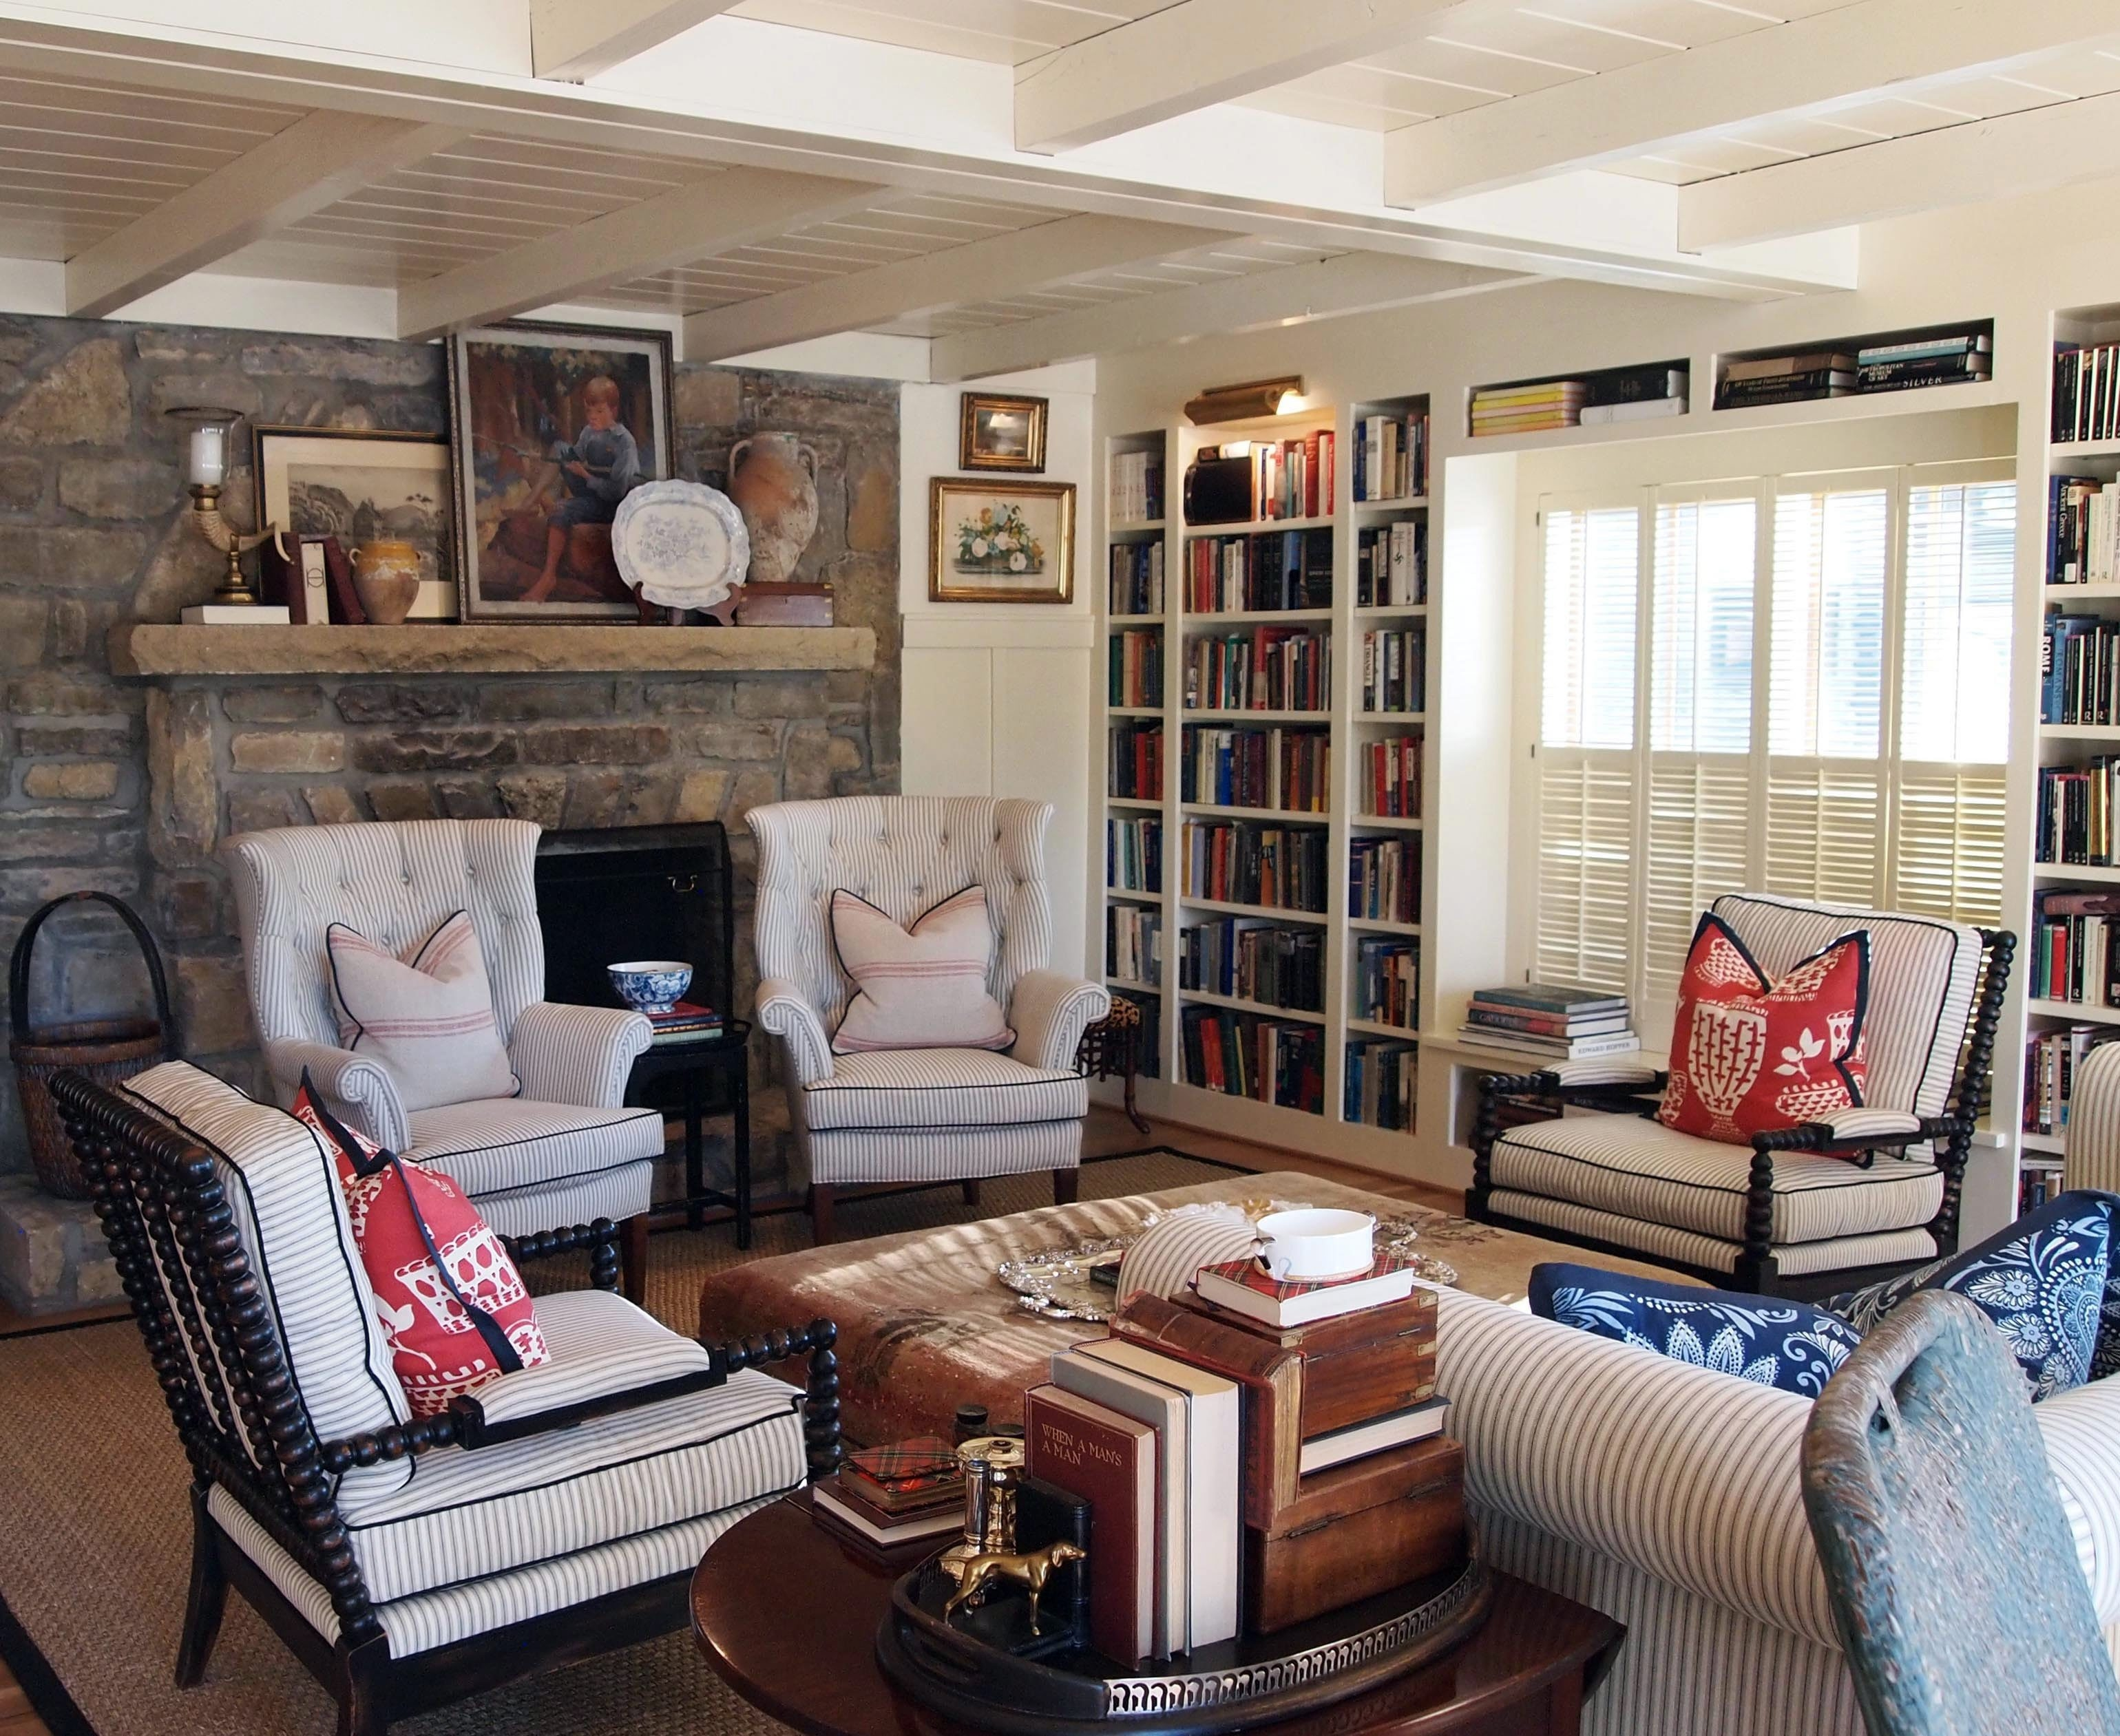 Downsizing from a larger home is an art, but you can still maintain a stylish space.